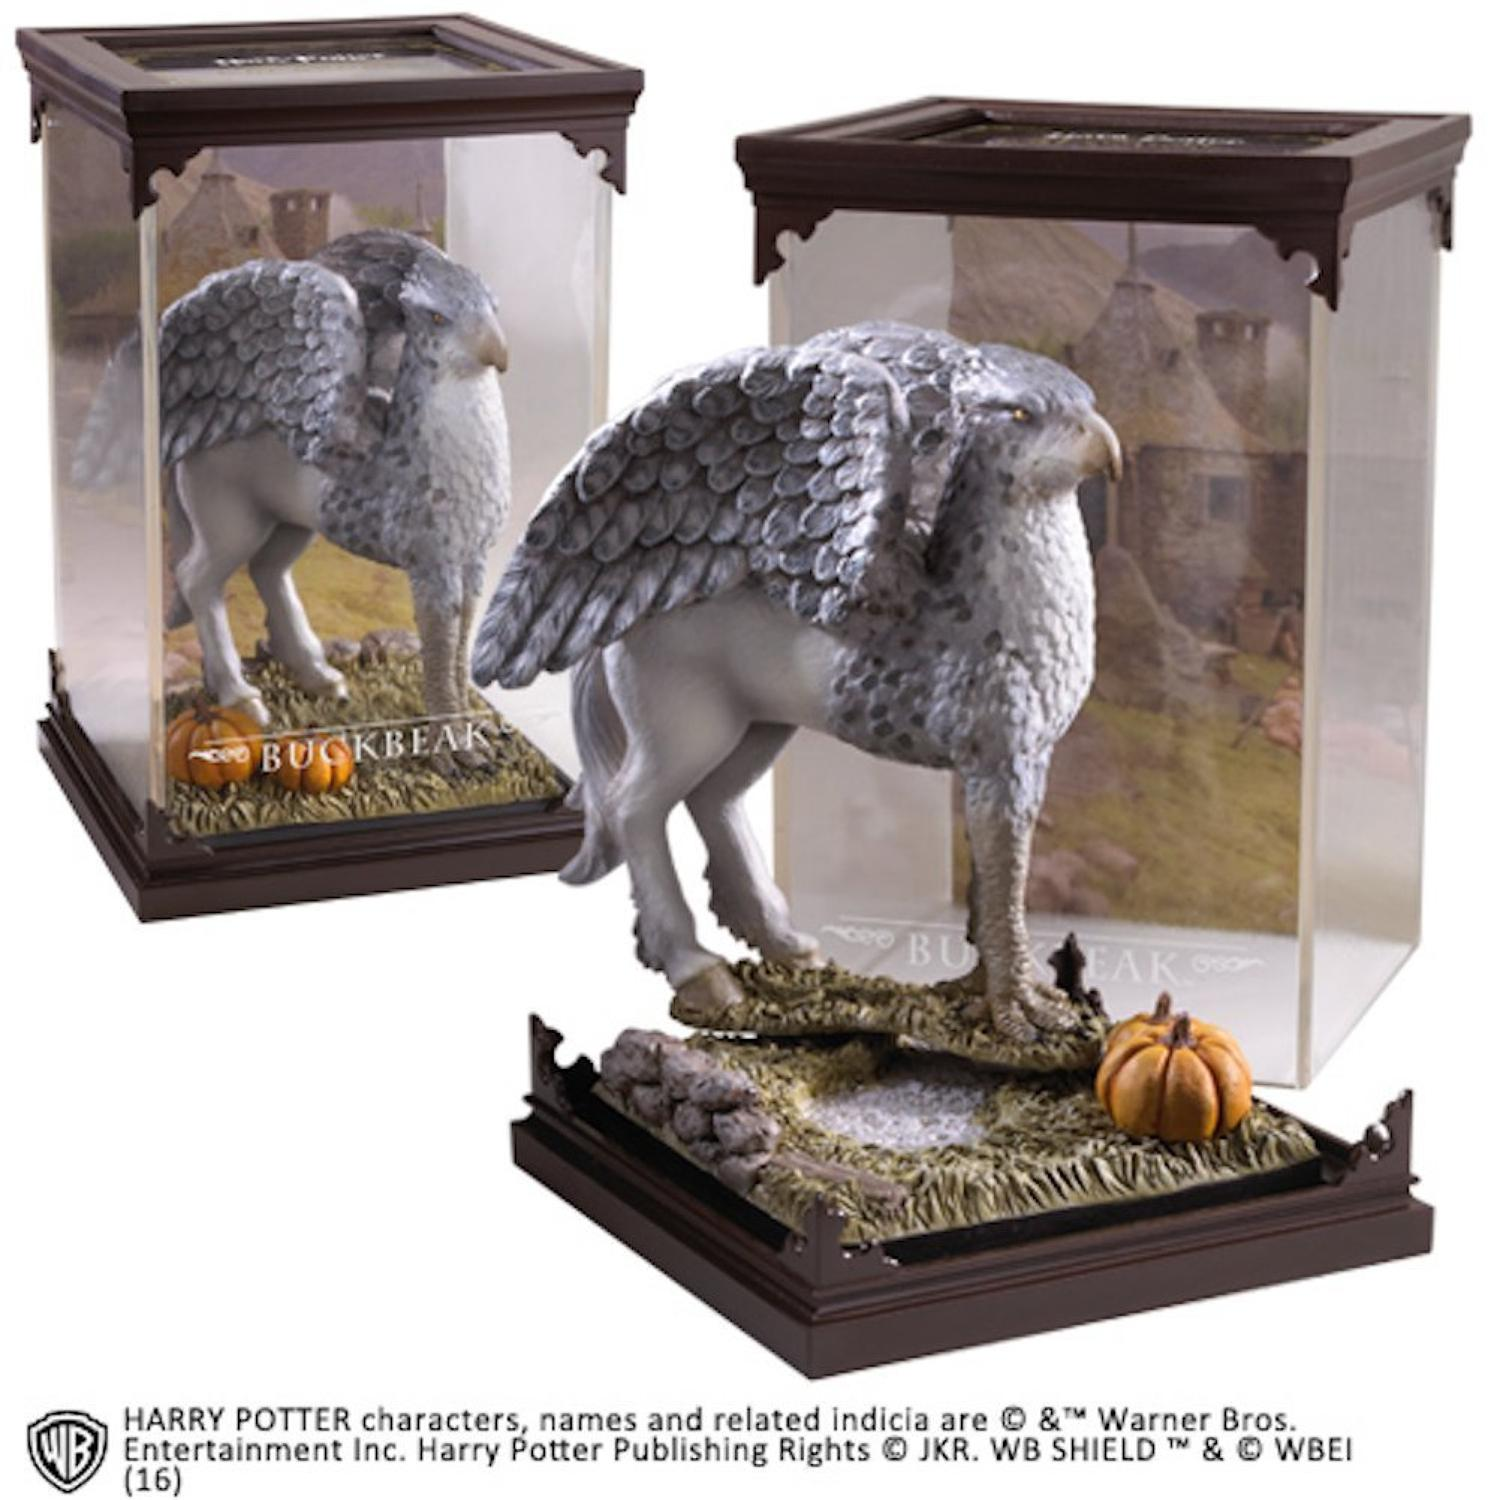 Harry Potter - Buckbeak the Hippogriff Magical Creature